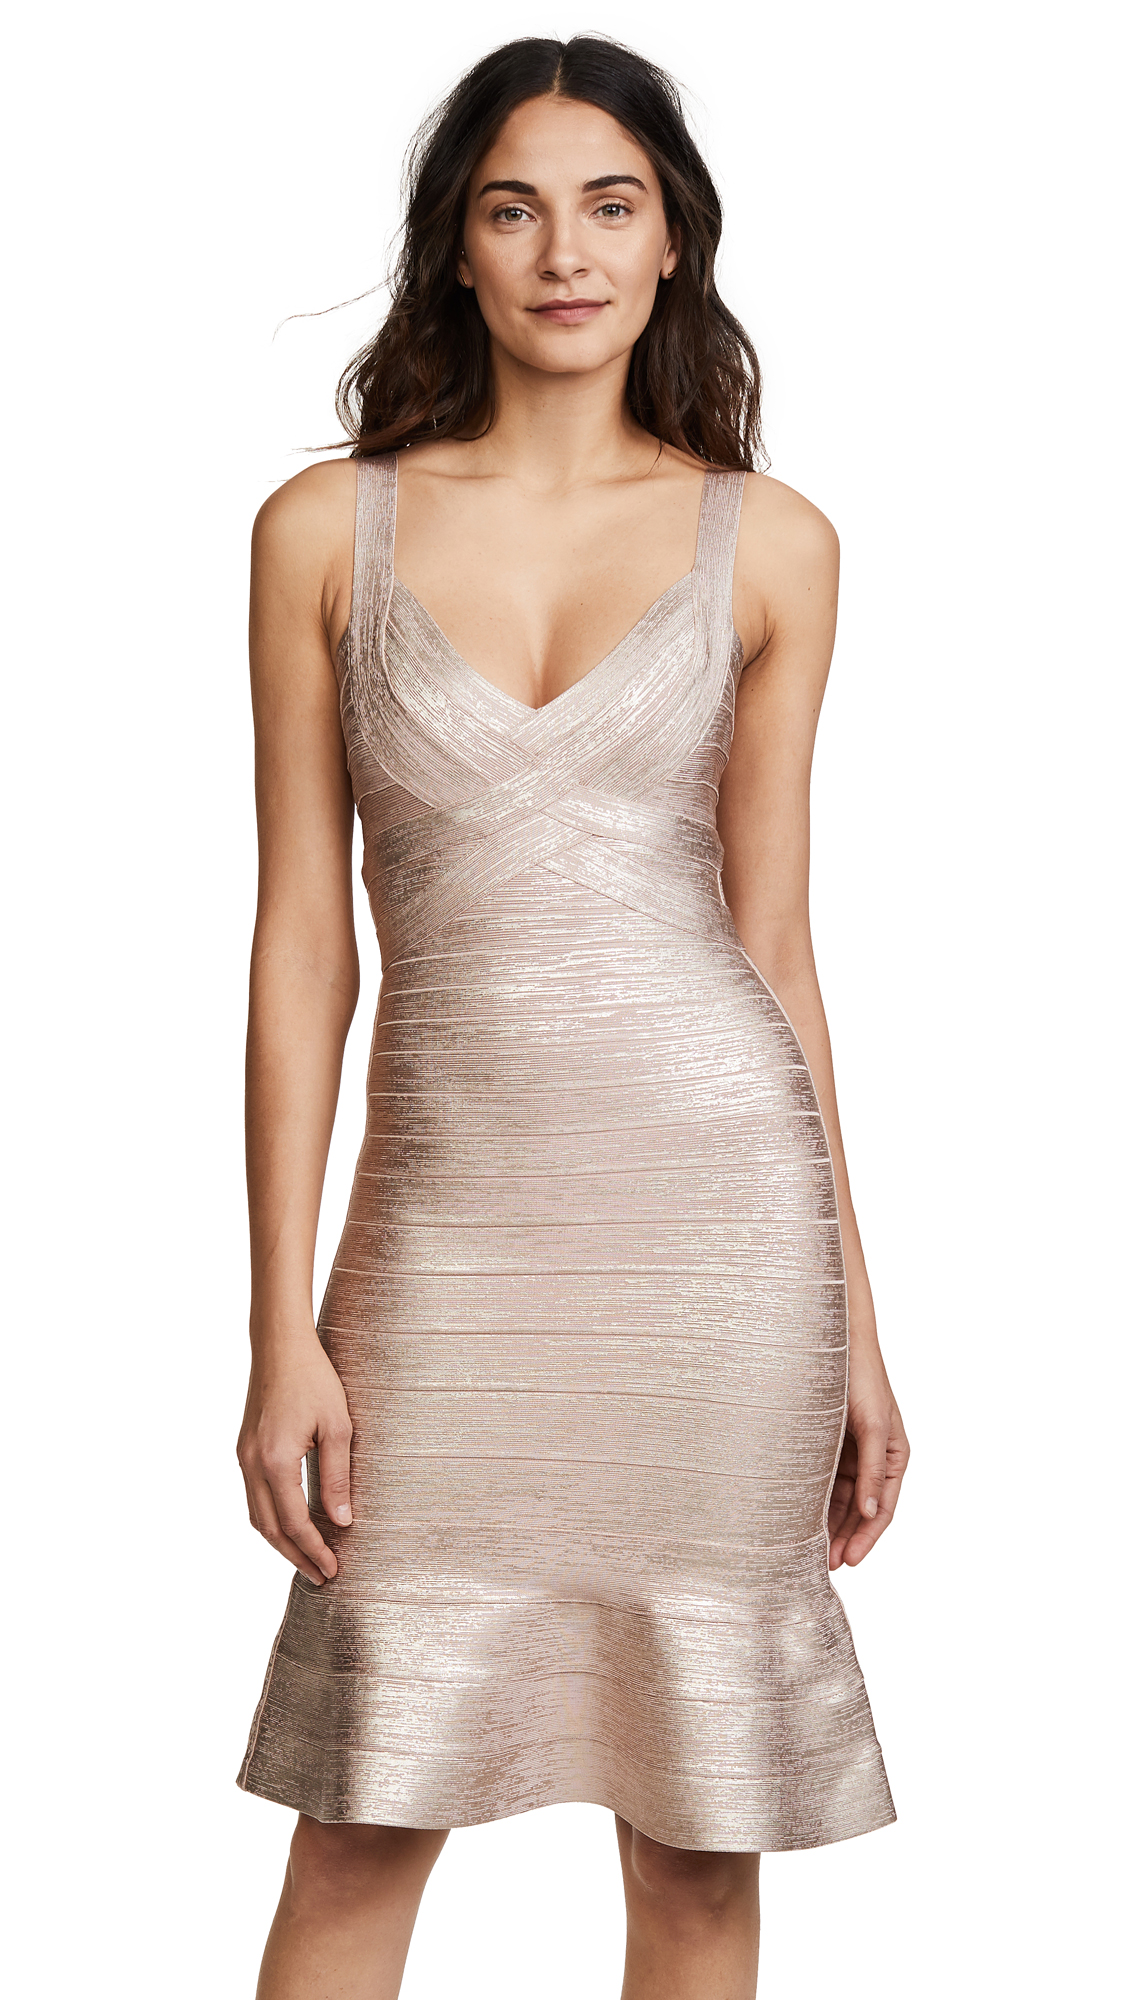 Herve Leger Scoop Neck Midi Dress - Rose Gold Combo